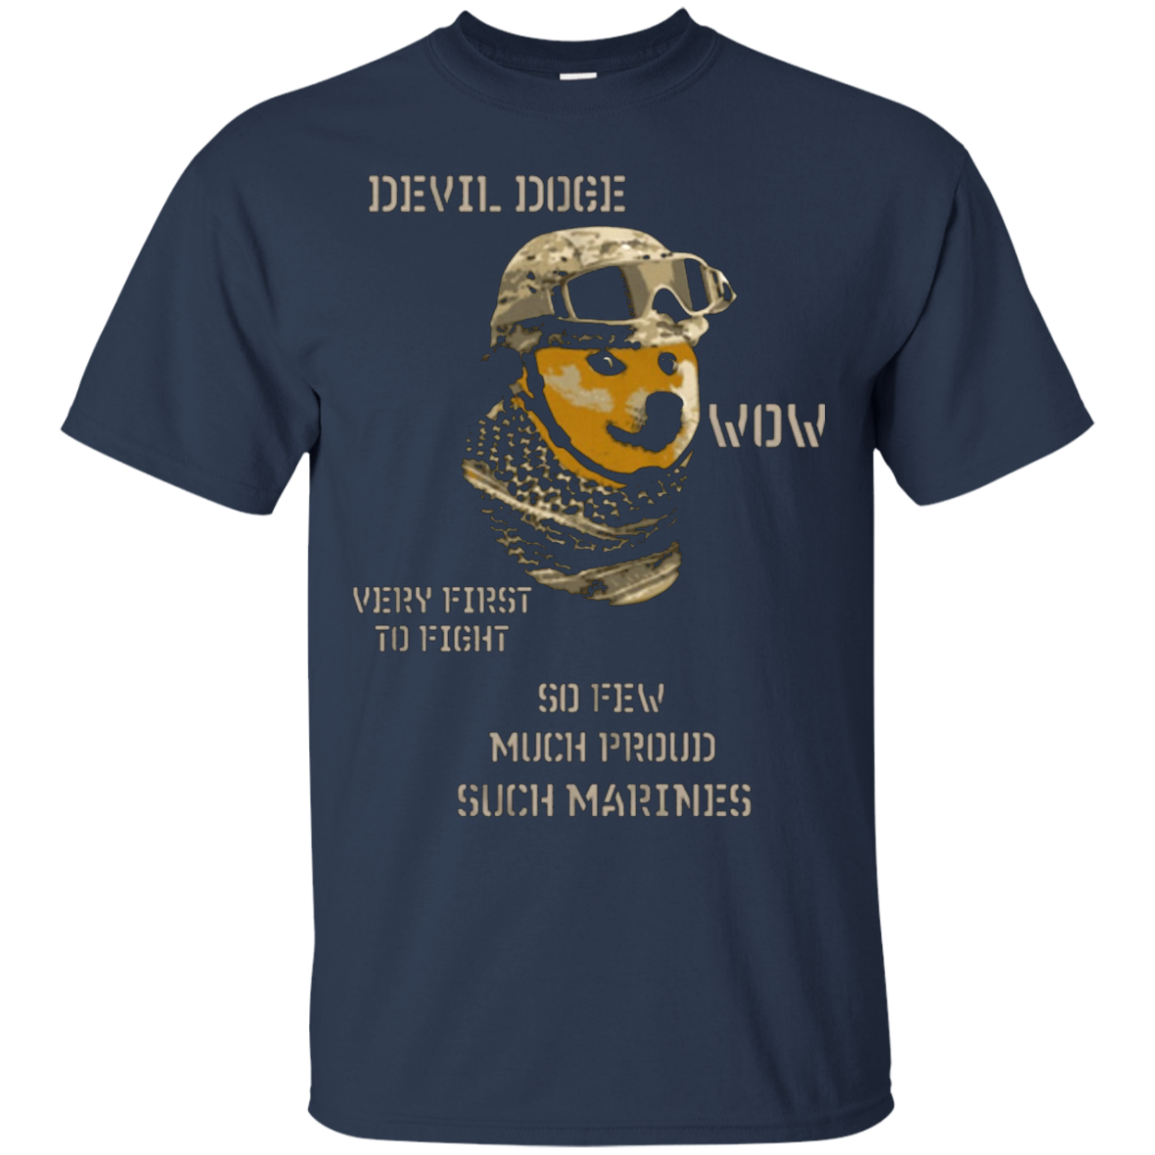 Devil Doge wow verry first to fight so few much pround such - T-Shirt